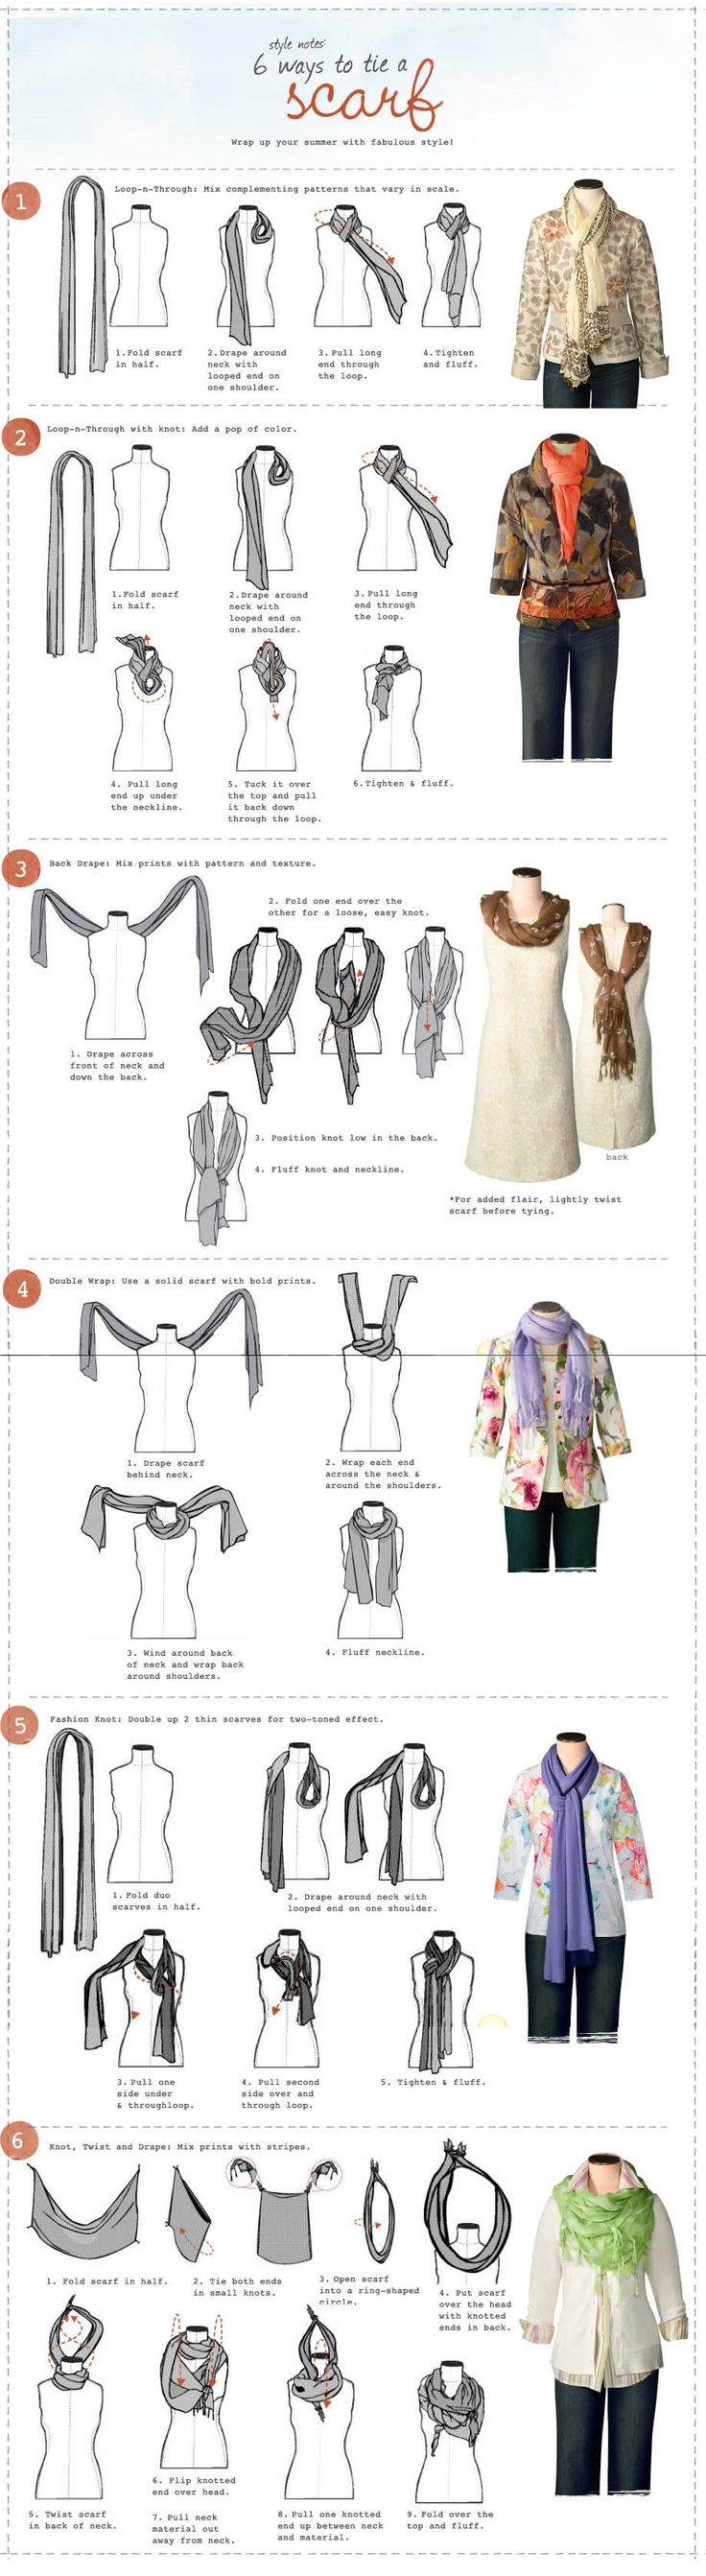 DIY Tutorial: 10 Tutorials Showing How To Tie A Scarf / How To Tie A Scarf: Image Illustrated & 37 Different Ways To Tie A Scarf Video - Bead&Cord